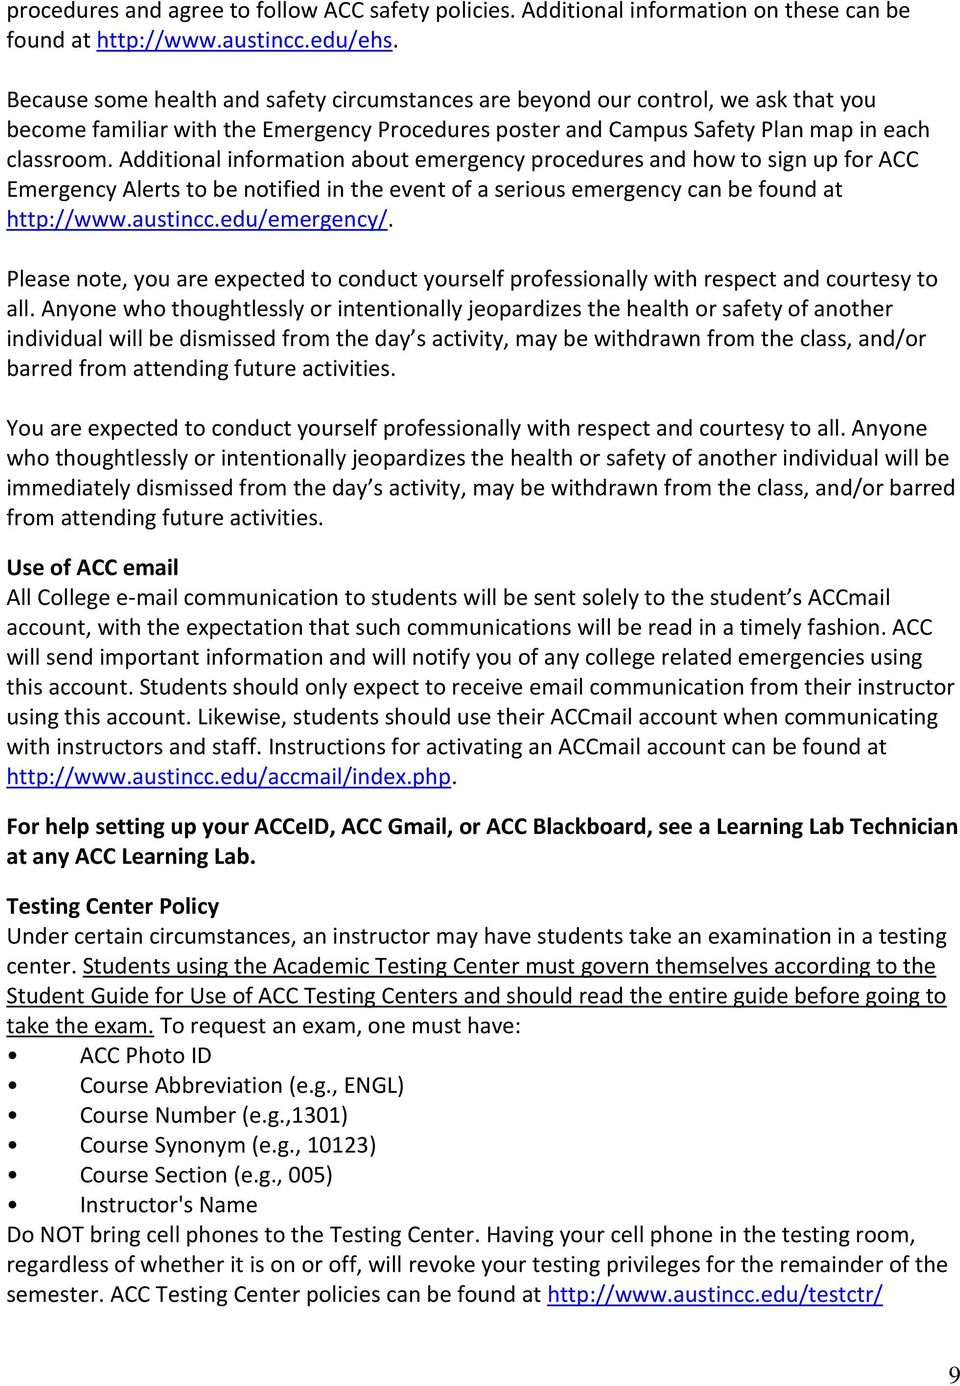 Additional information about emergency procedures and how to sign up for ACC Emergency Alerts to be notified in the event of a serious emergency can be found at http://www.austincc.edu/emergency/.